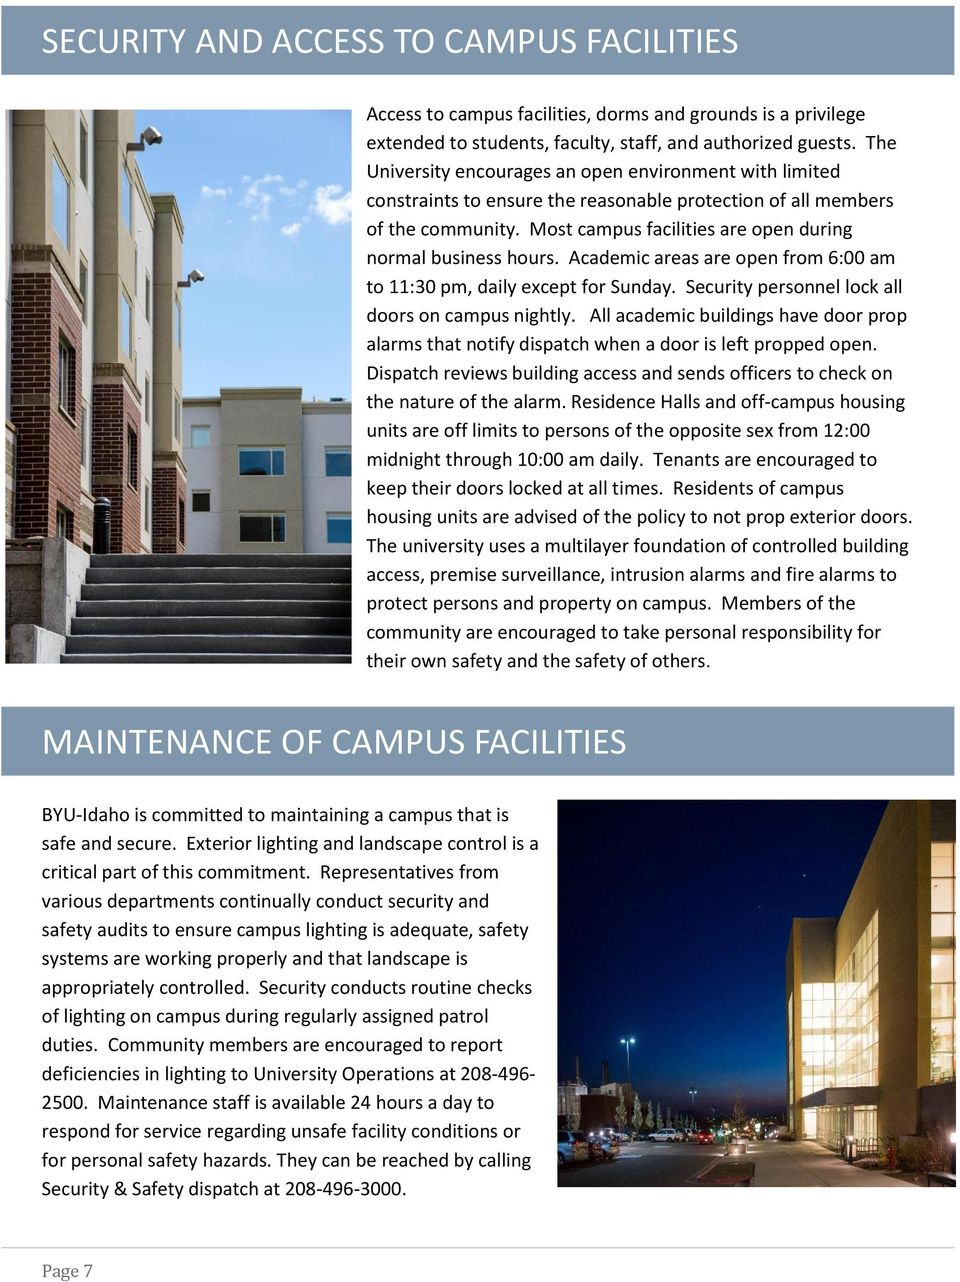 Most campus facilities are open during normal business hours. Academic areas are open from 6:00 am to 11:30 pm, daily except for Sunday. Security personnel lock all doors on campus nightly.